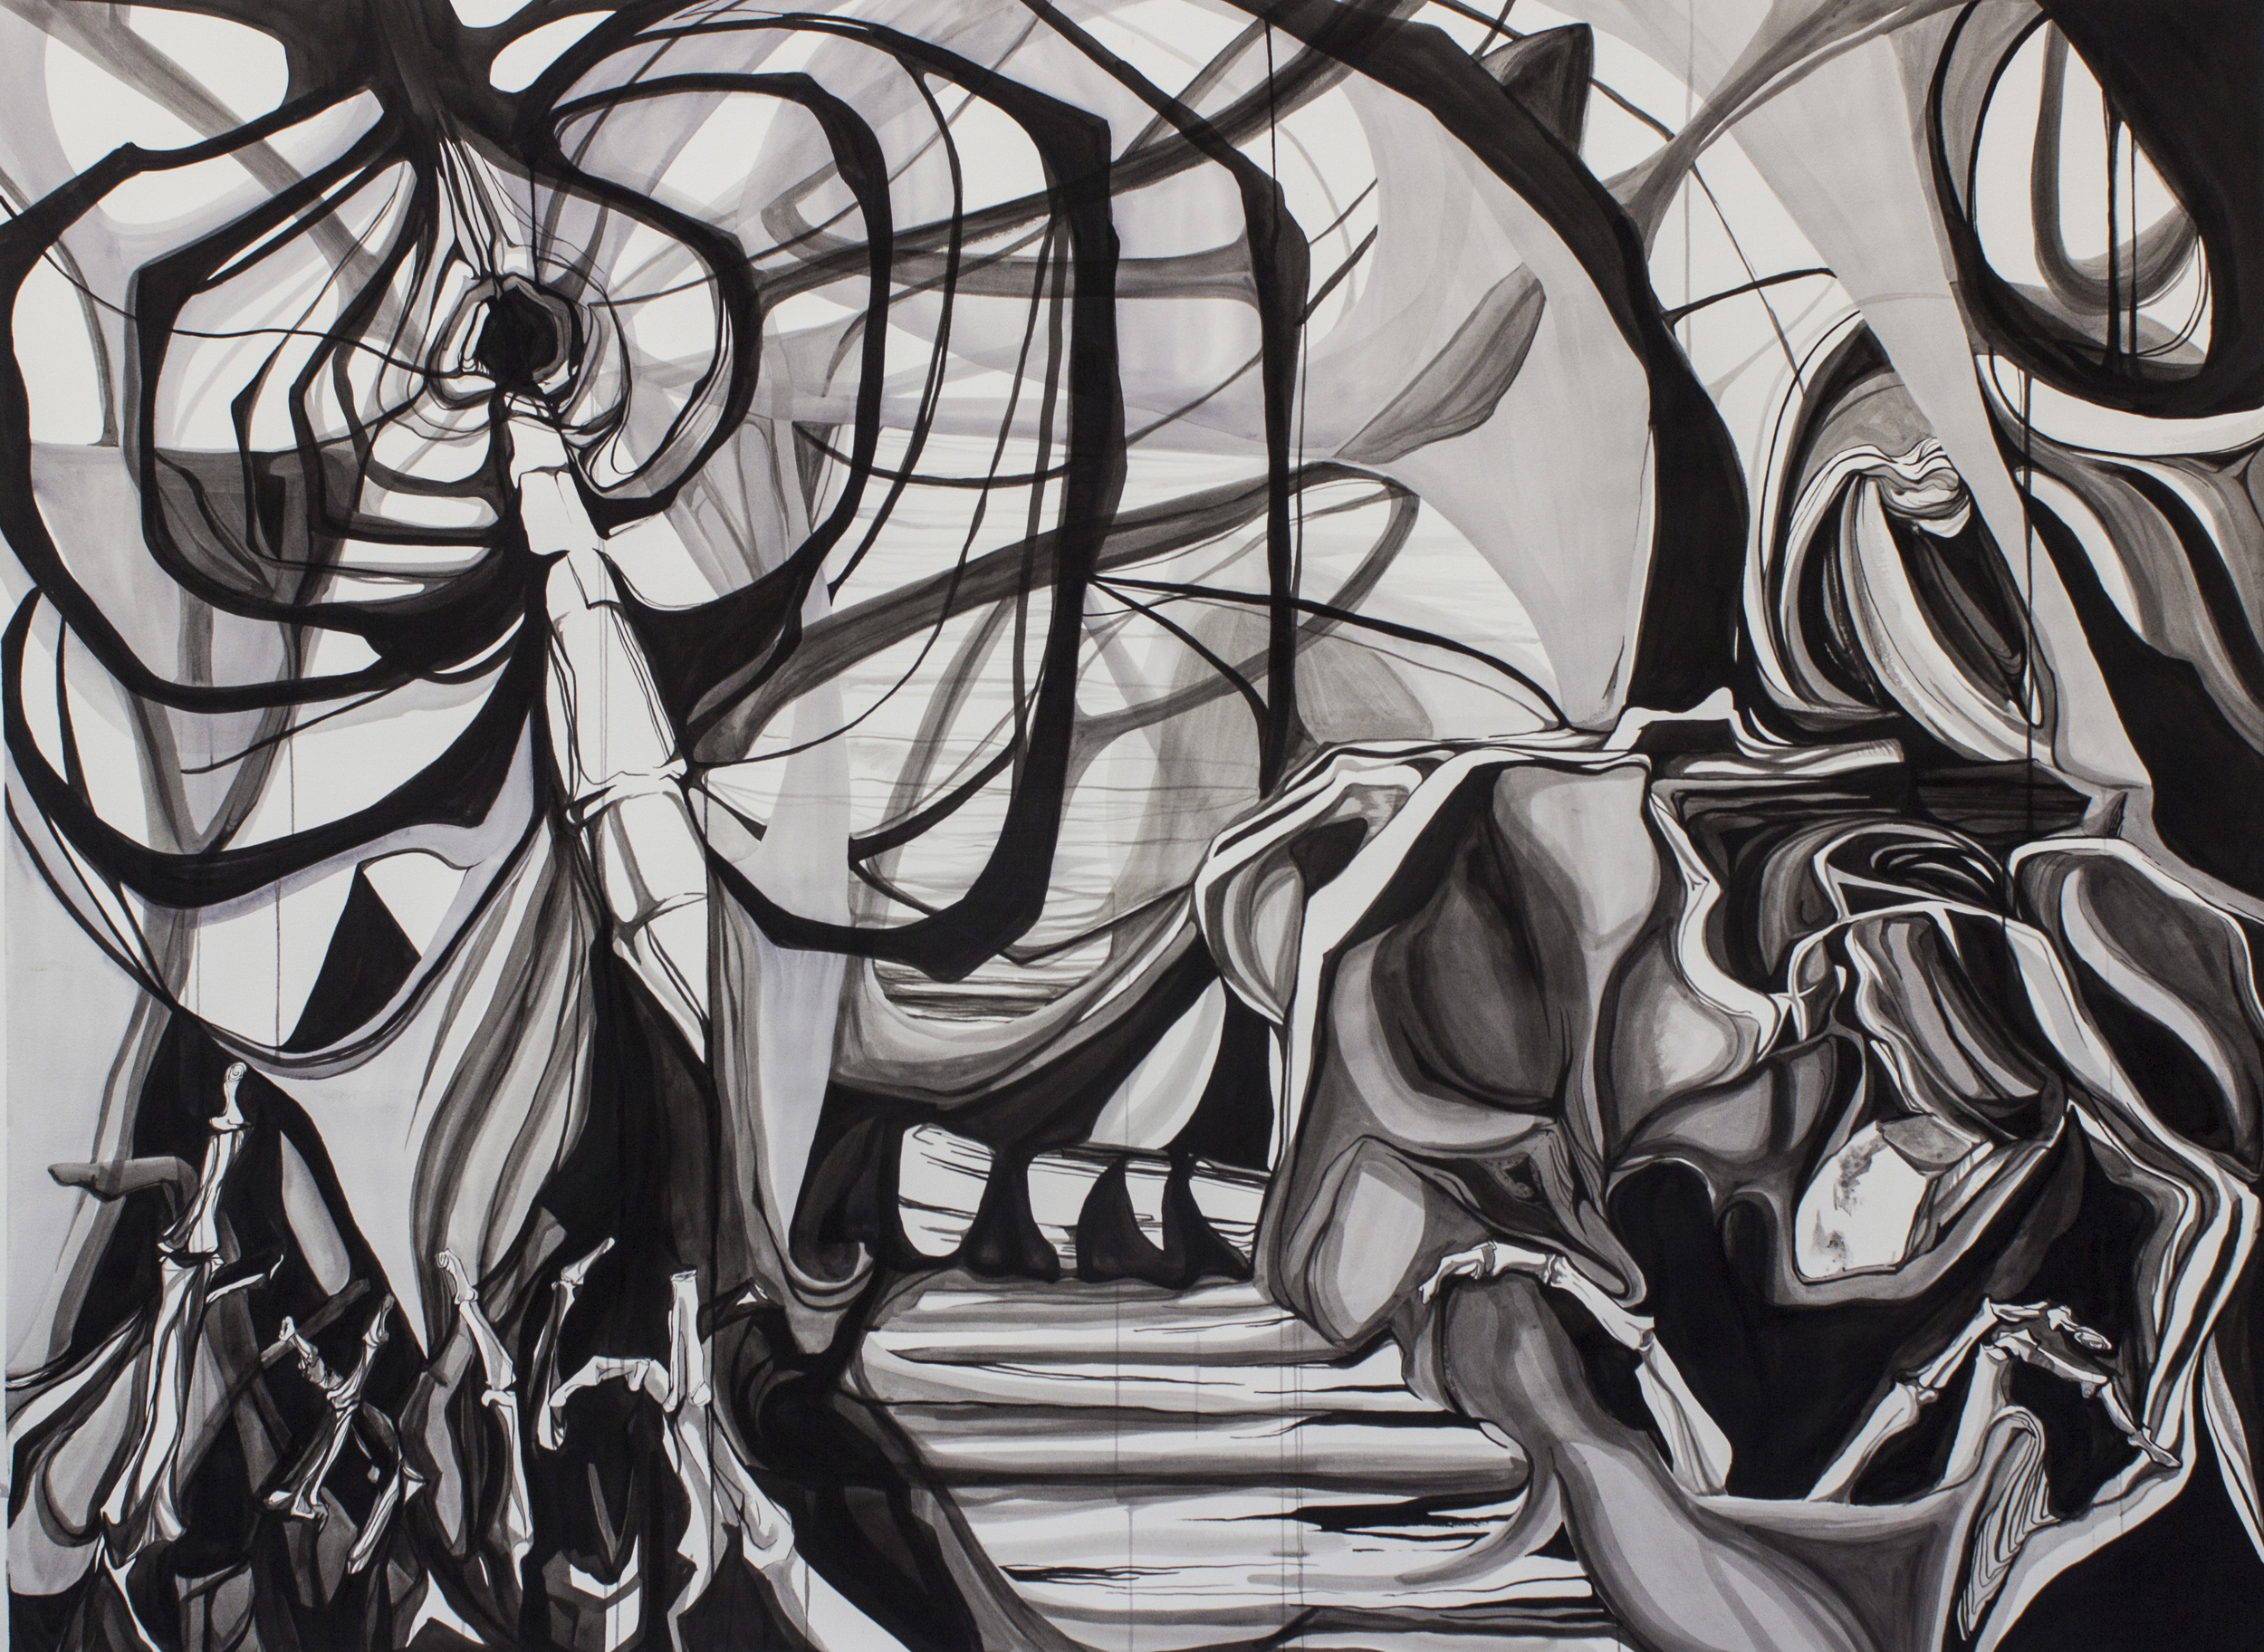 Dystopian Landscape (with Rib Cage)